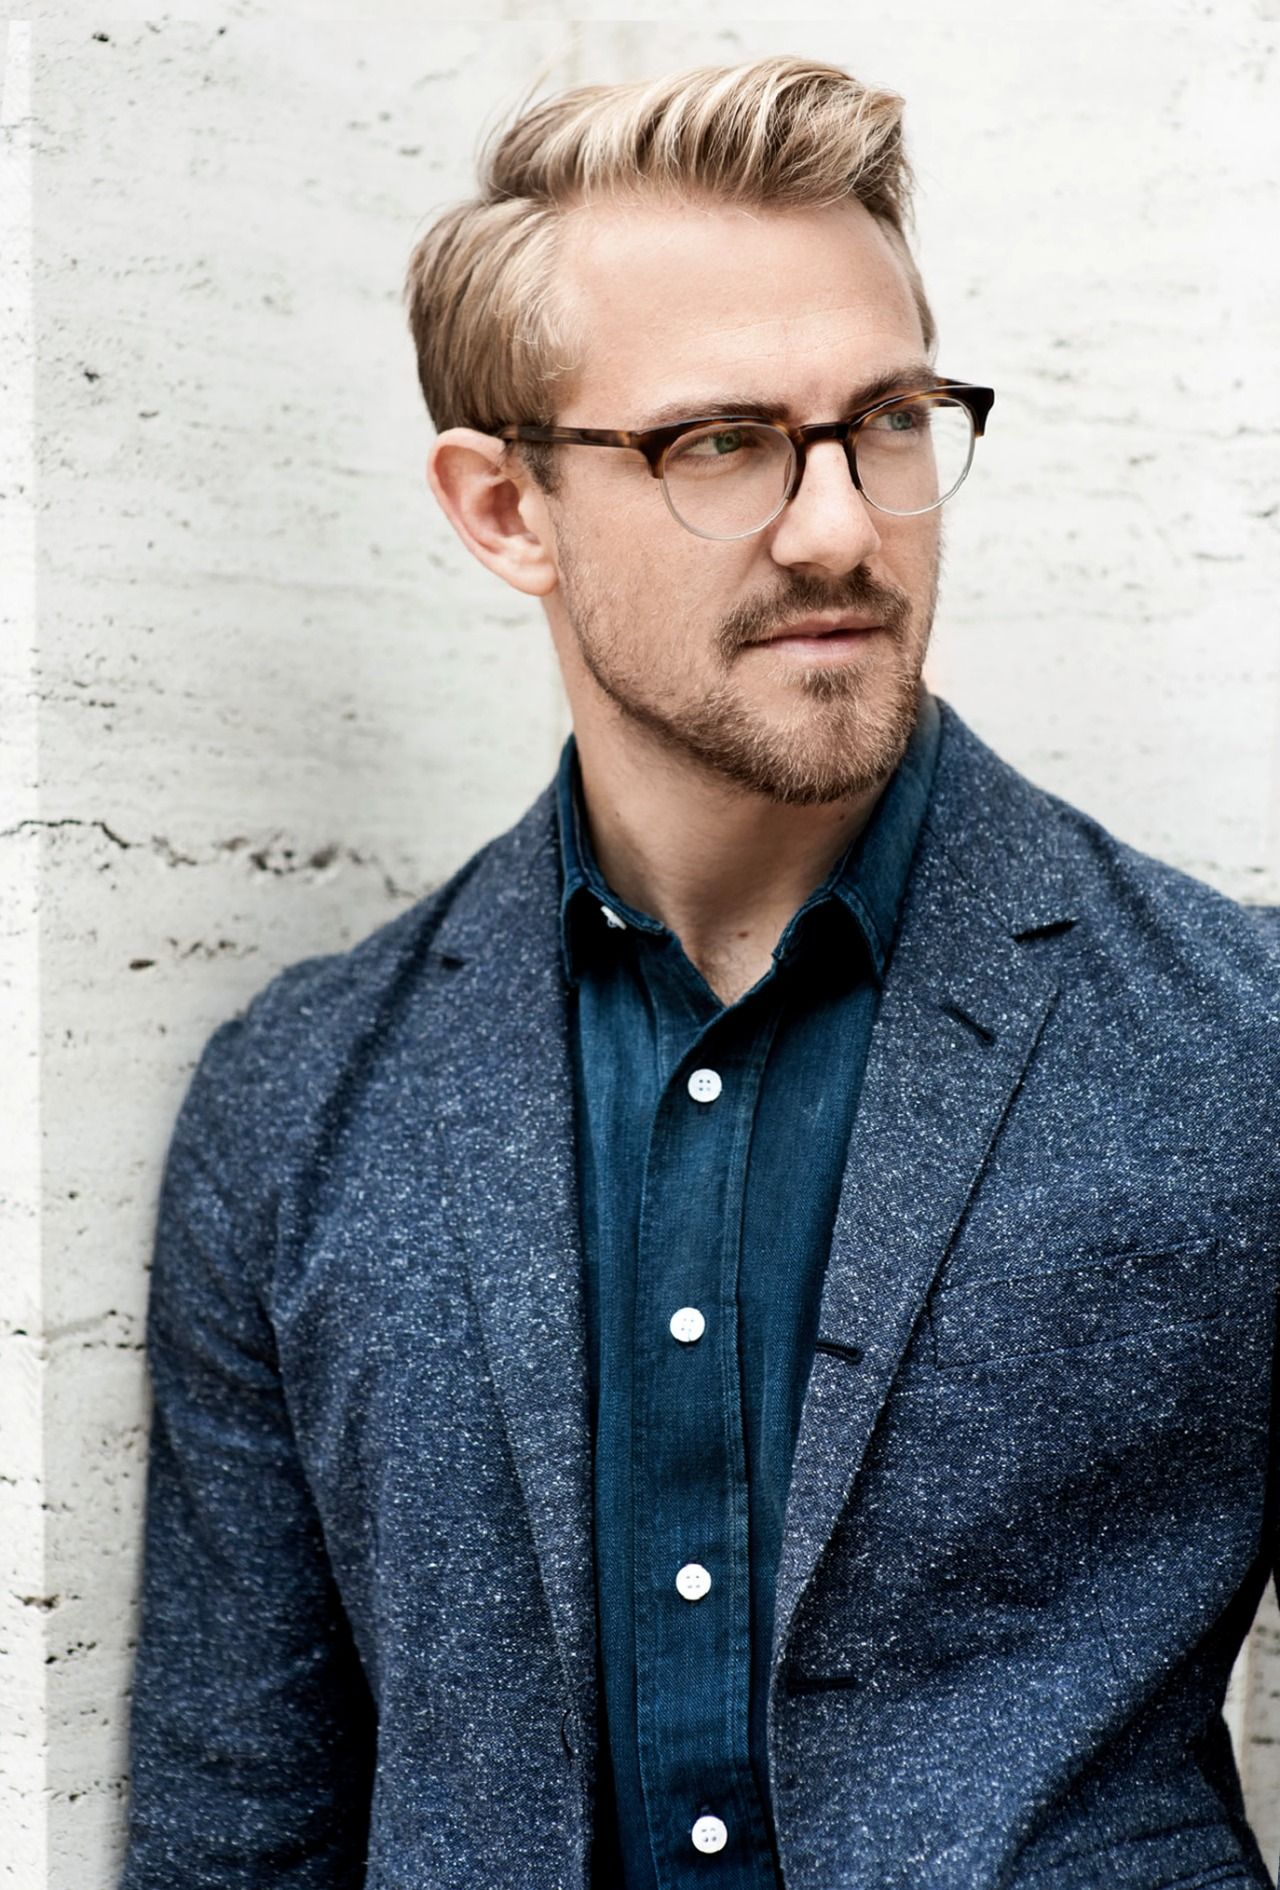 Haircuts for men with glasses blonde on midnight blue  style  pinterest  man style dapper and